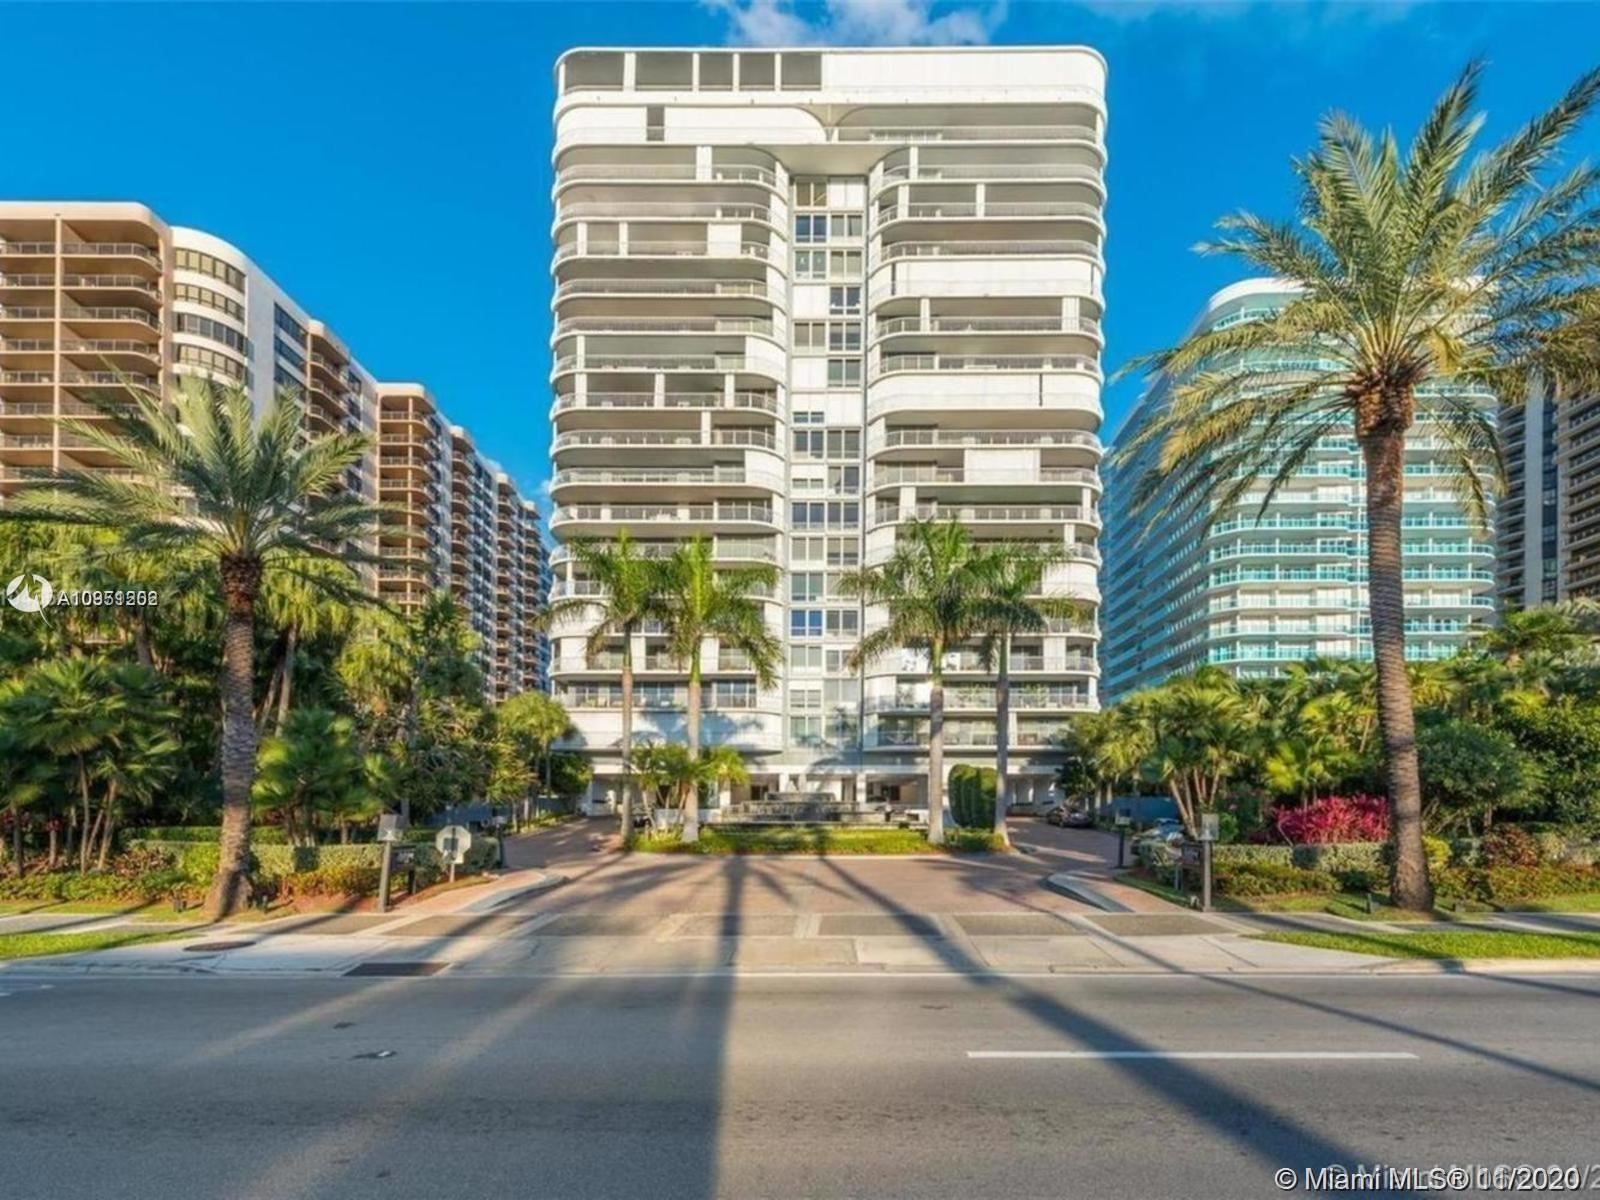 Live in the coveted Bal Harbour 101 in the desirable Bal Harbour neighborhood. This home boasts over